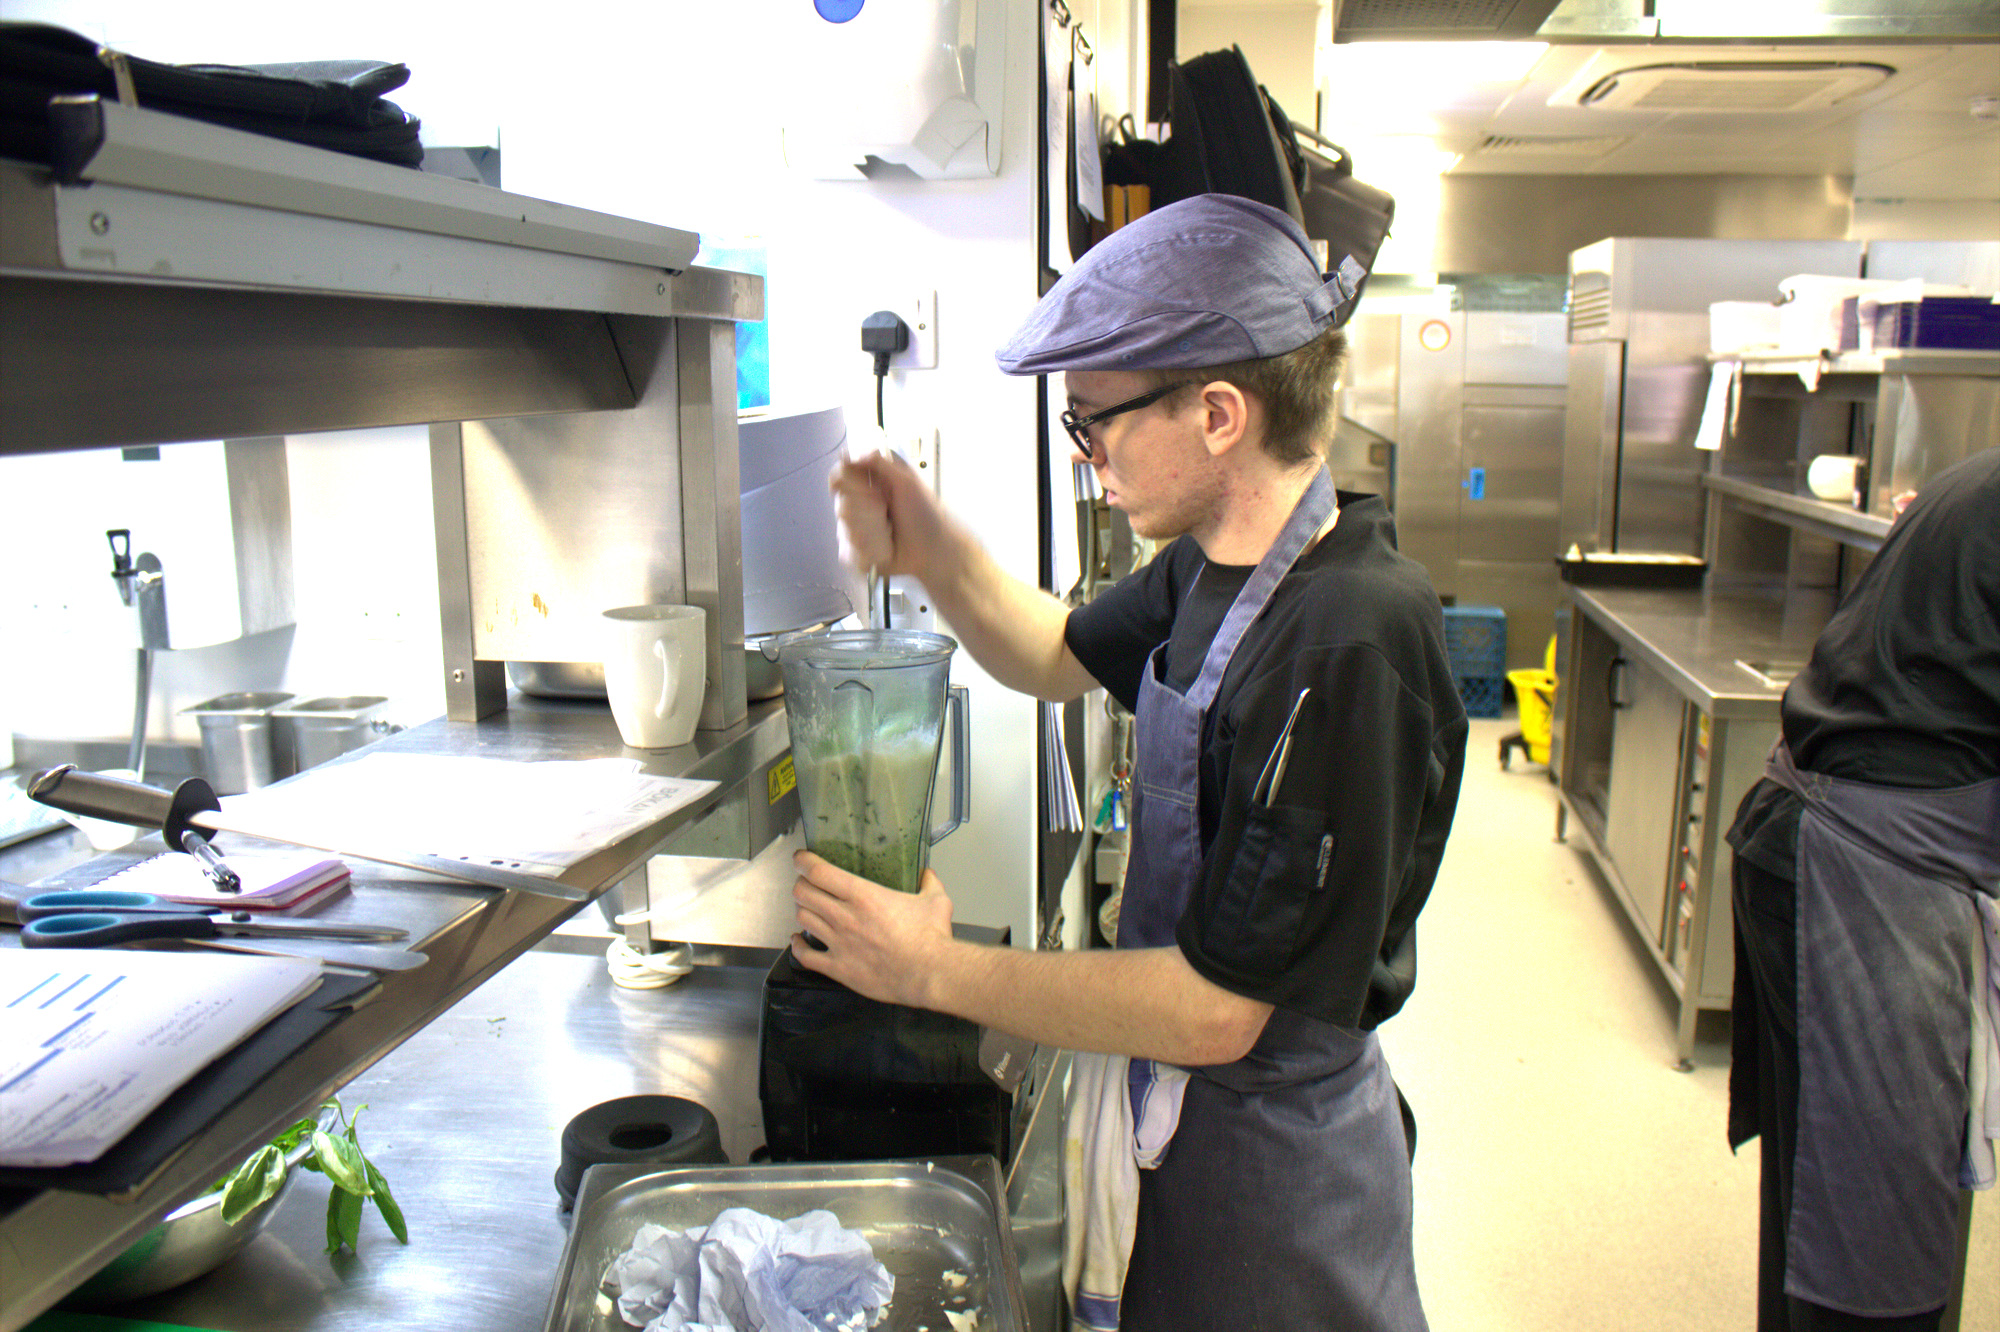 Louis blending tarragon